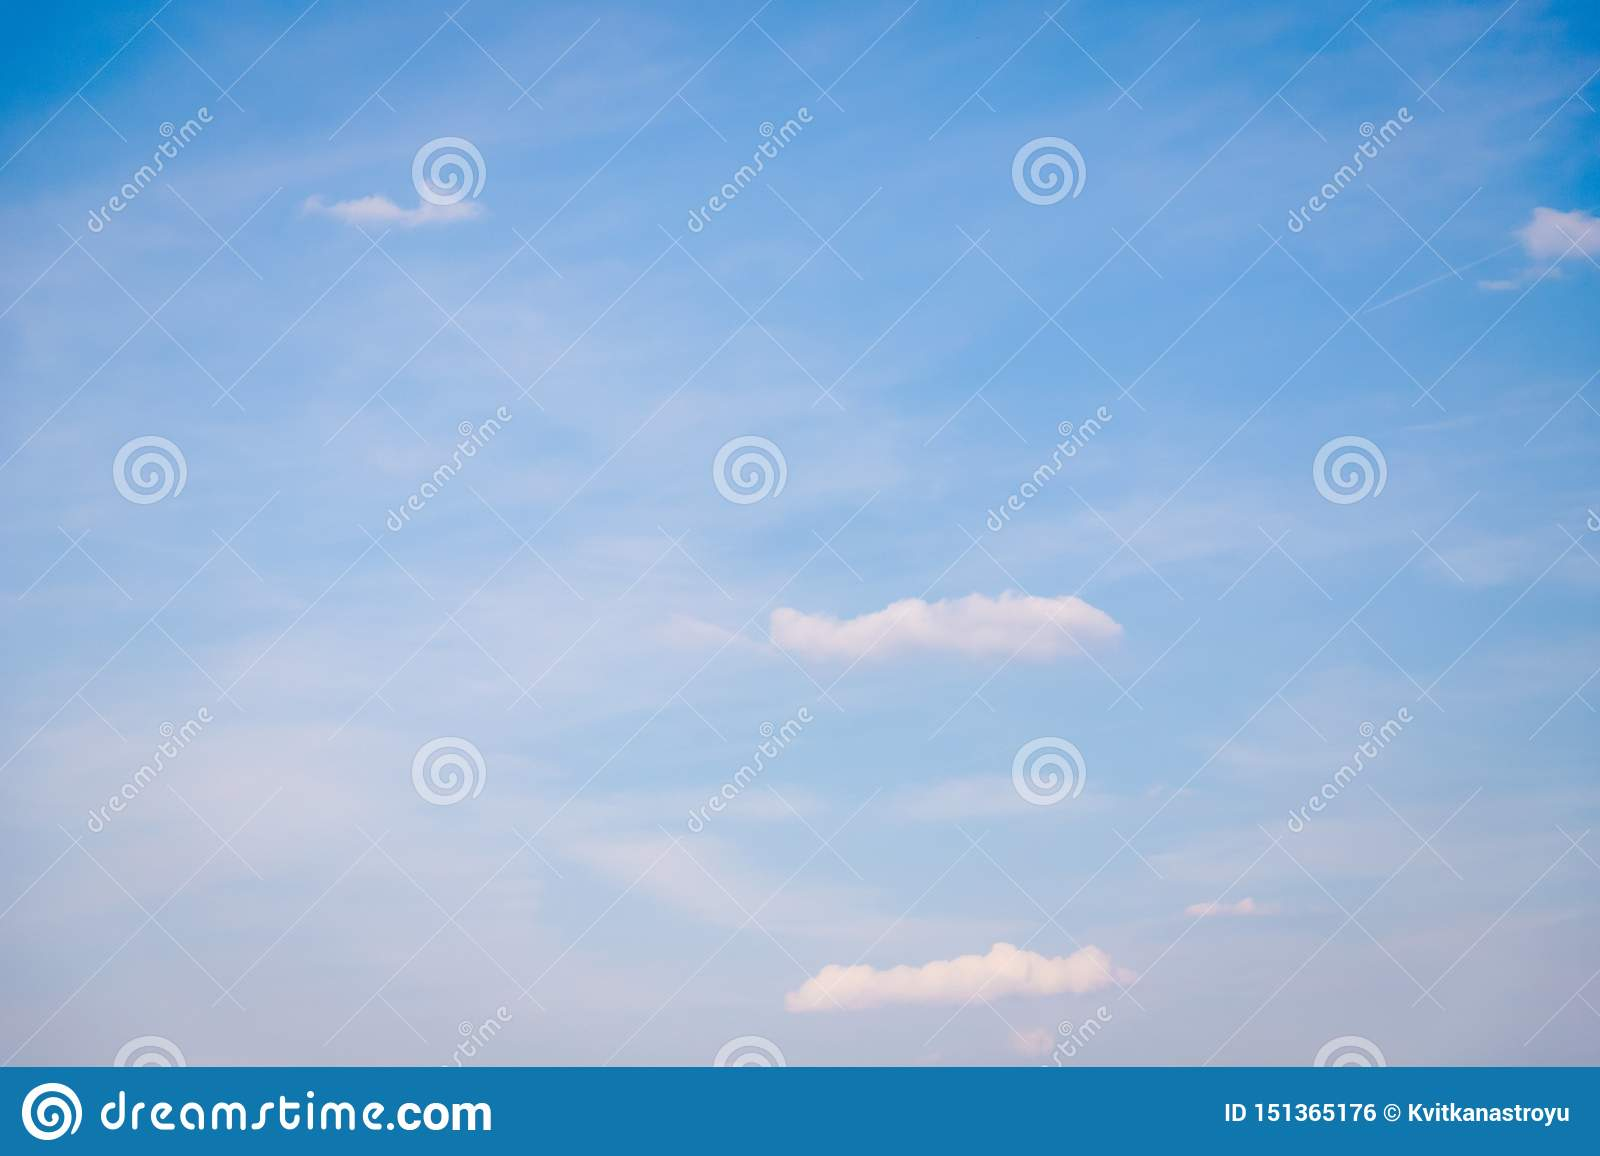 Small clouds on a light blue sky background, soft color